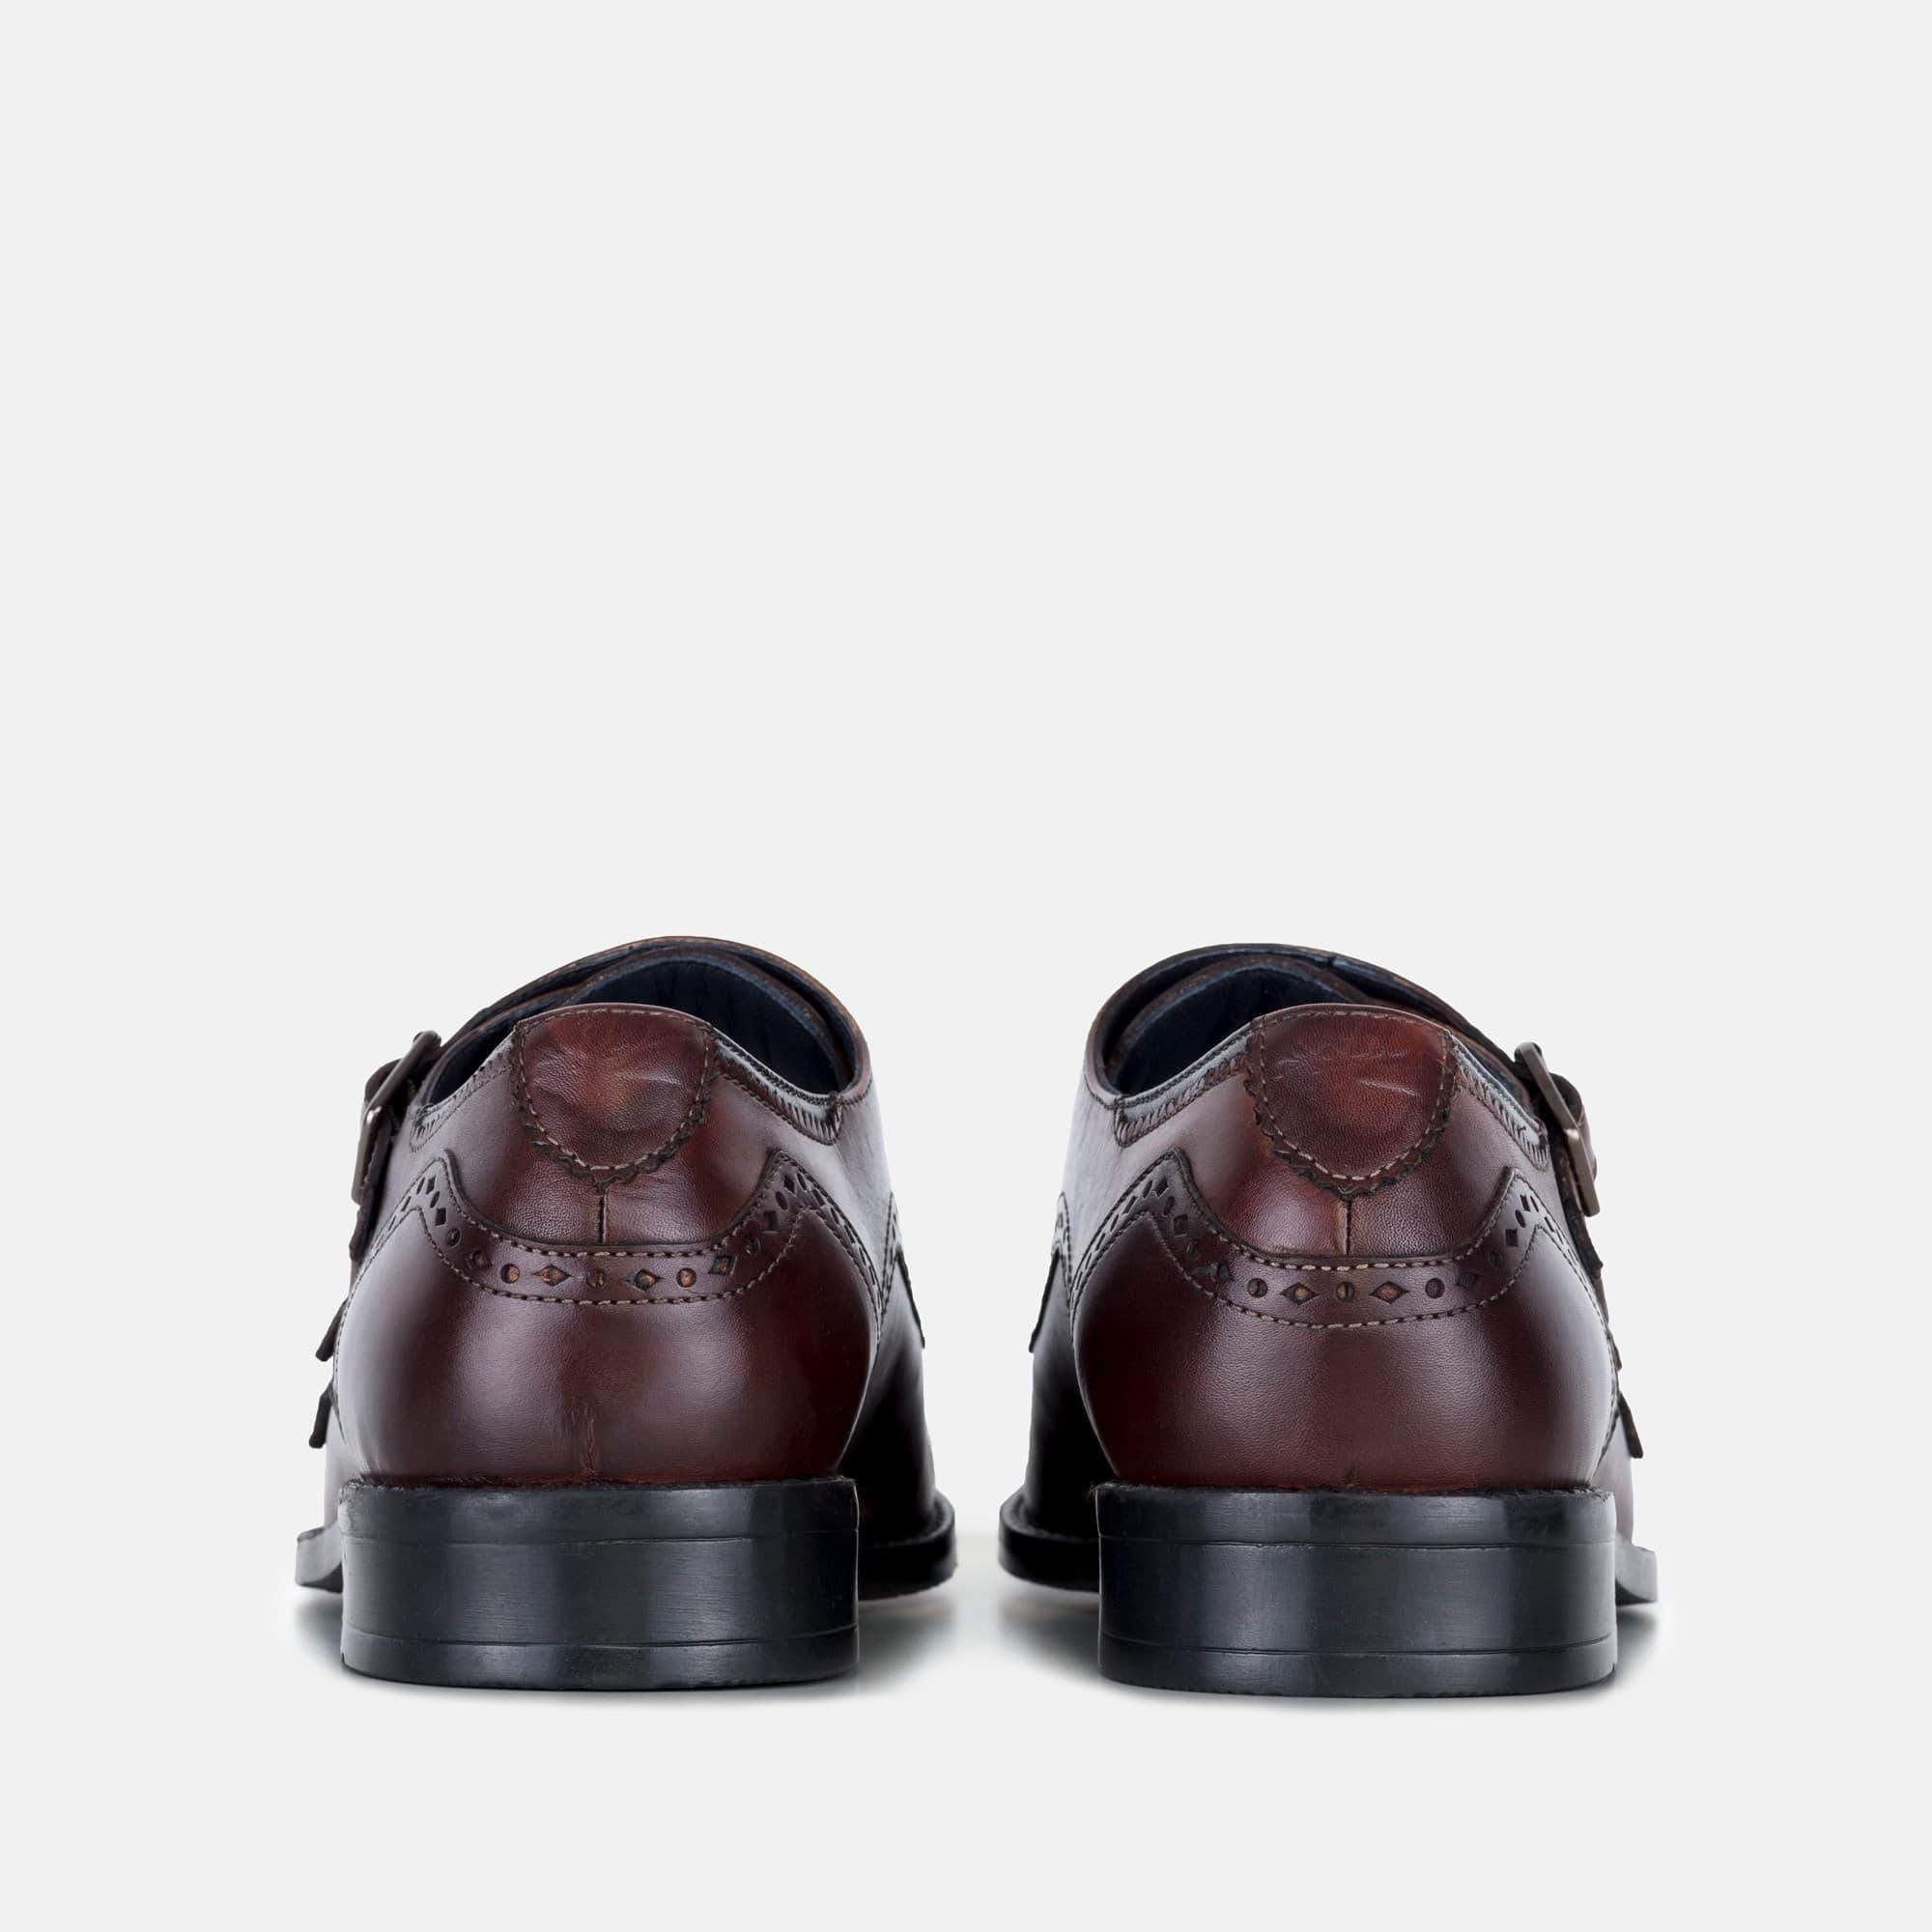 Goodwin Smith Footwear Kenwood Bordo Triple Leather Monk Strap